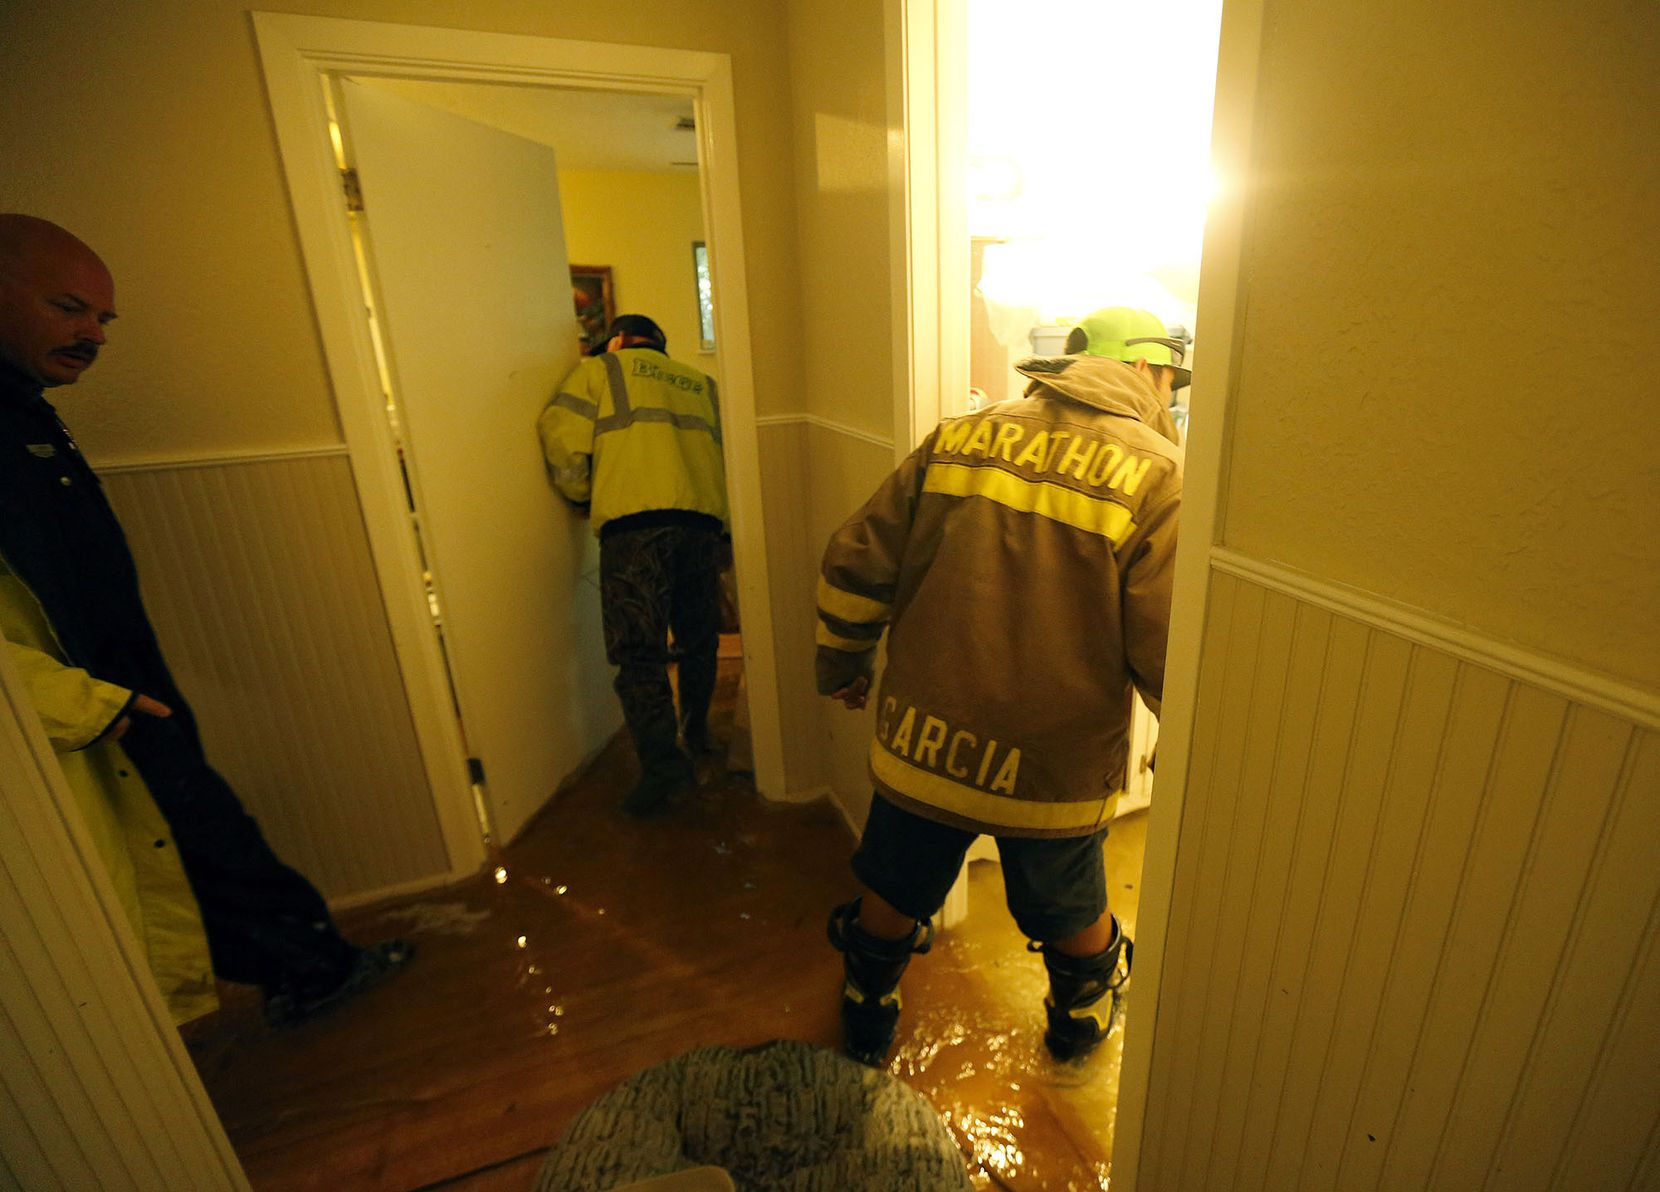 Dickinson police and fire officials search a Dickinson, Texas house they got a welfare check on Monday, Aug. 28, 2017 in the wake of Hurricane Harvey. They couldn't find anyone at the home.